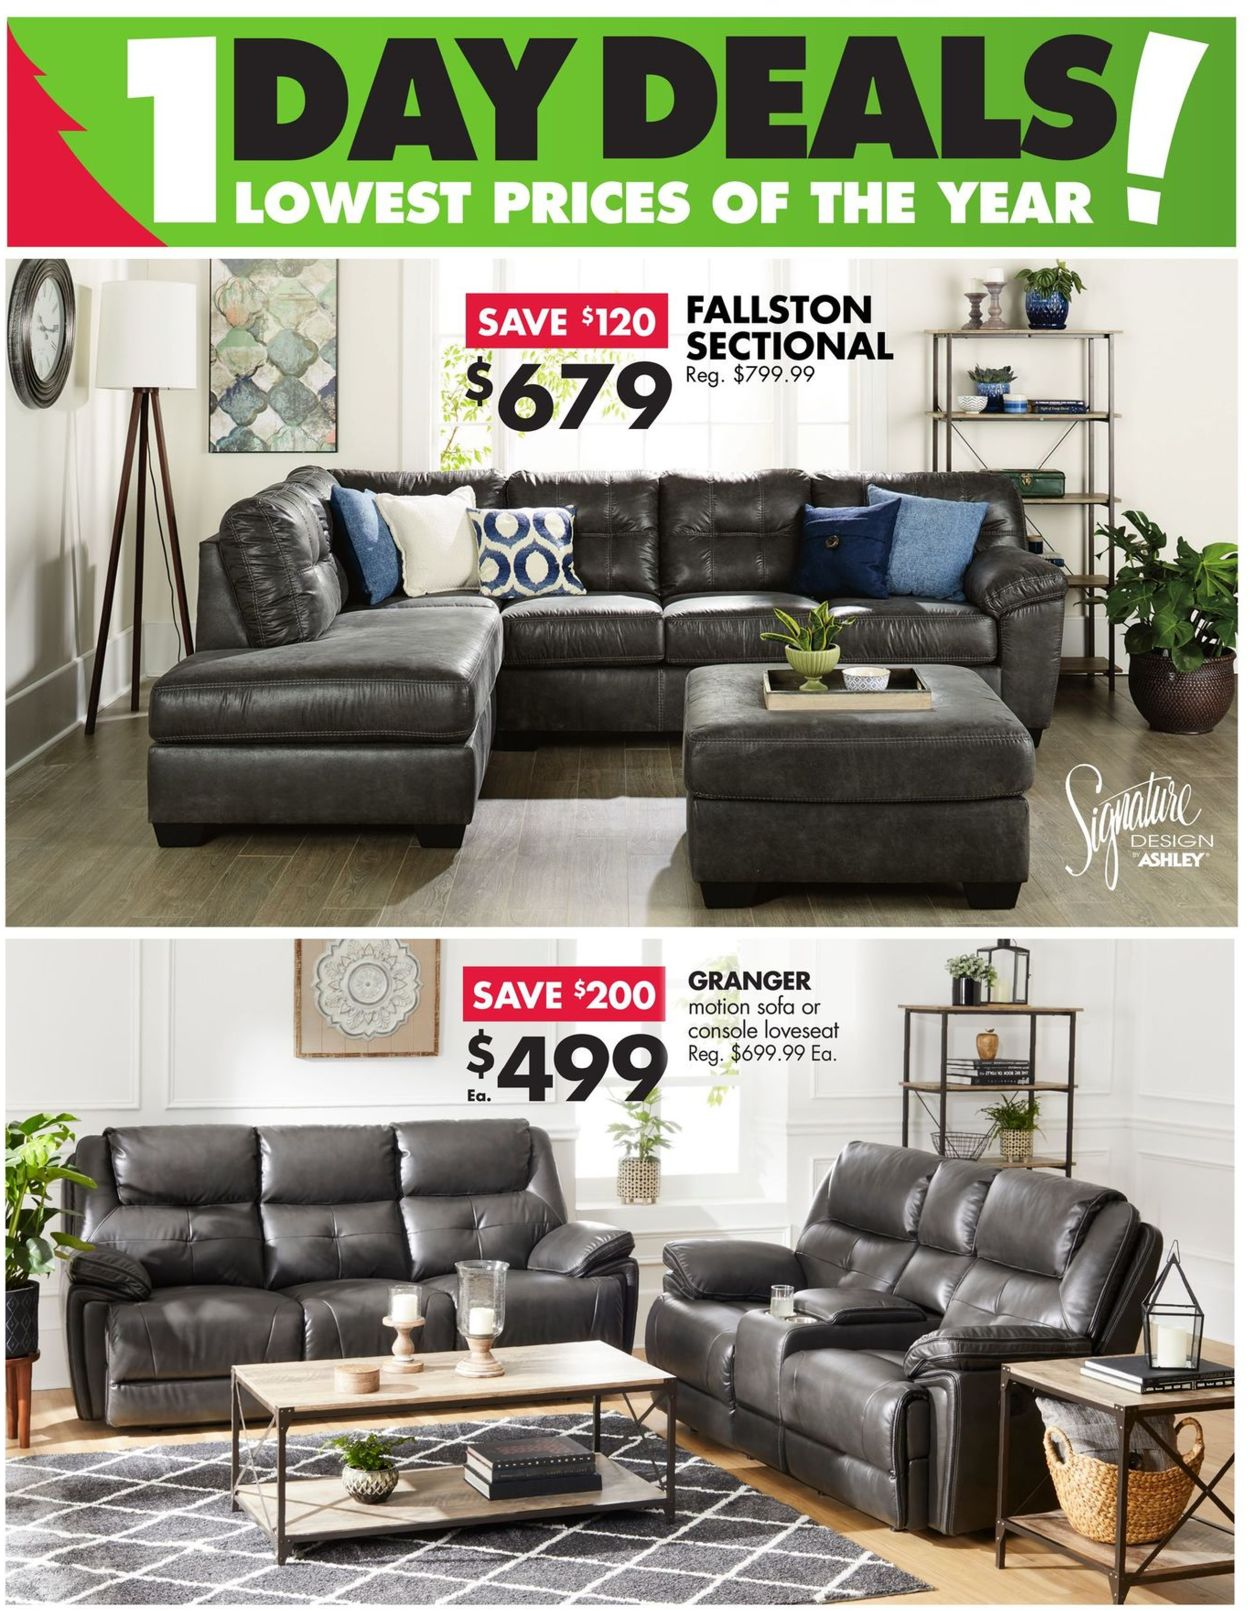 Big Lots Black Friday Sale Ad 2019 Current Weekly Ad 11 28 11 30 2019 2 Frequent Ads Com